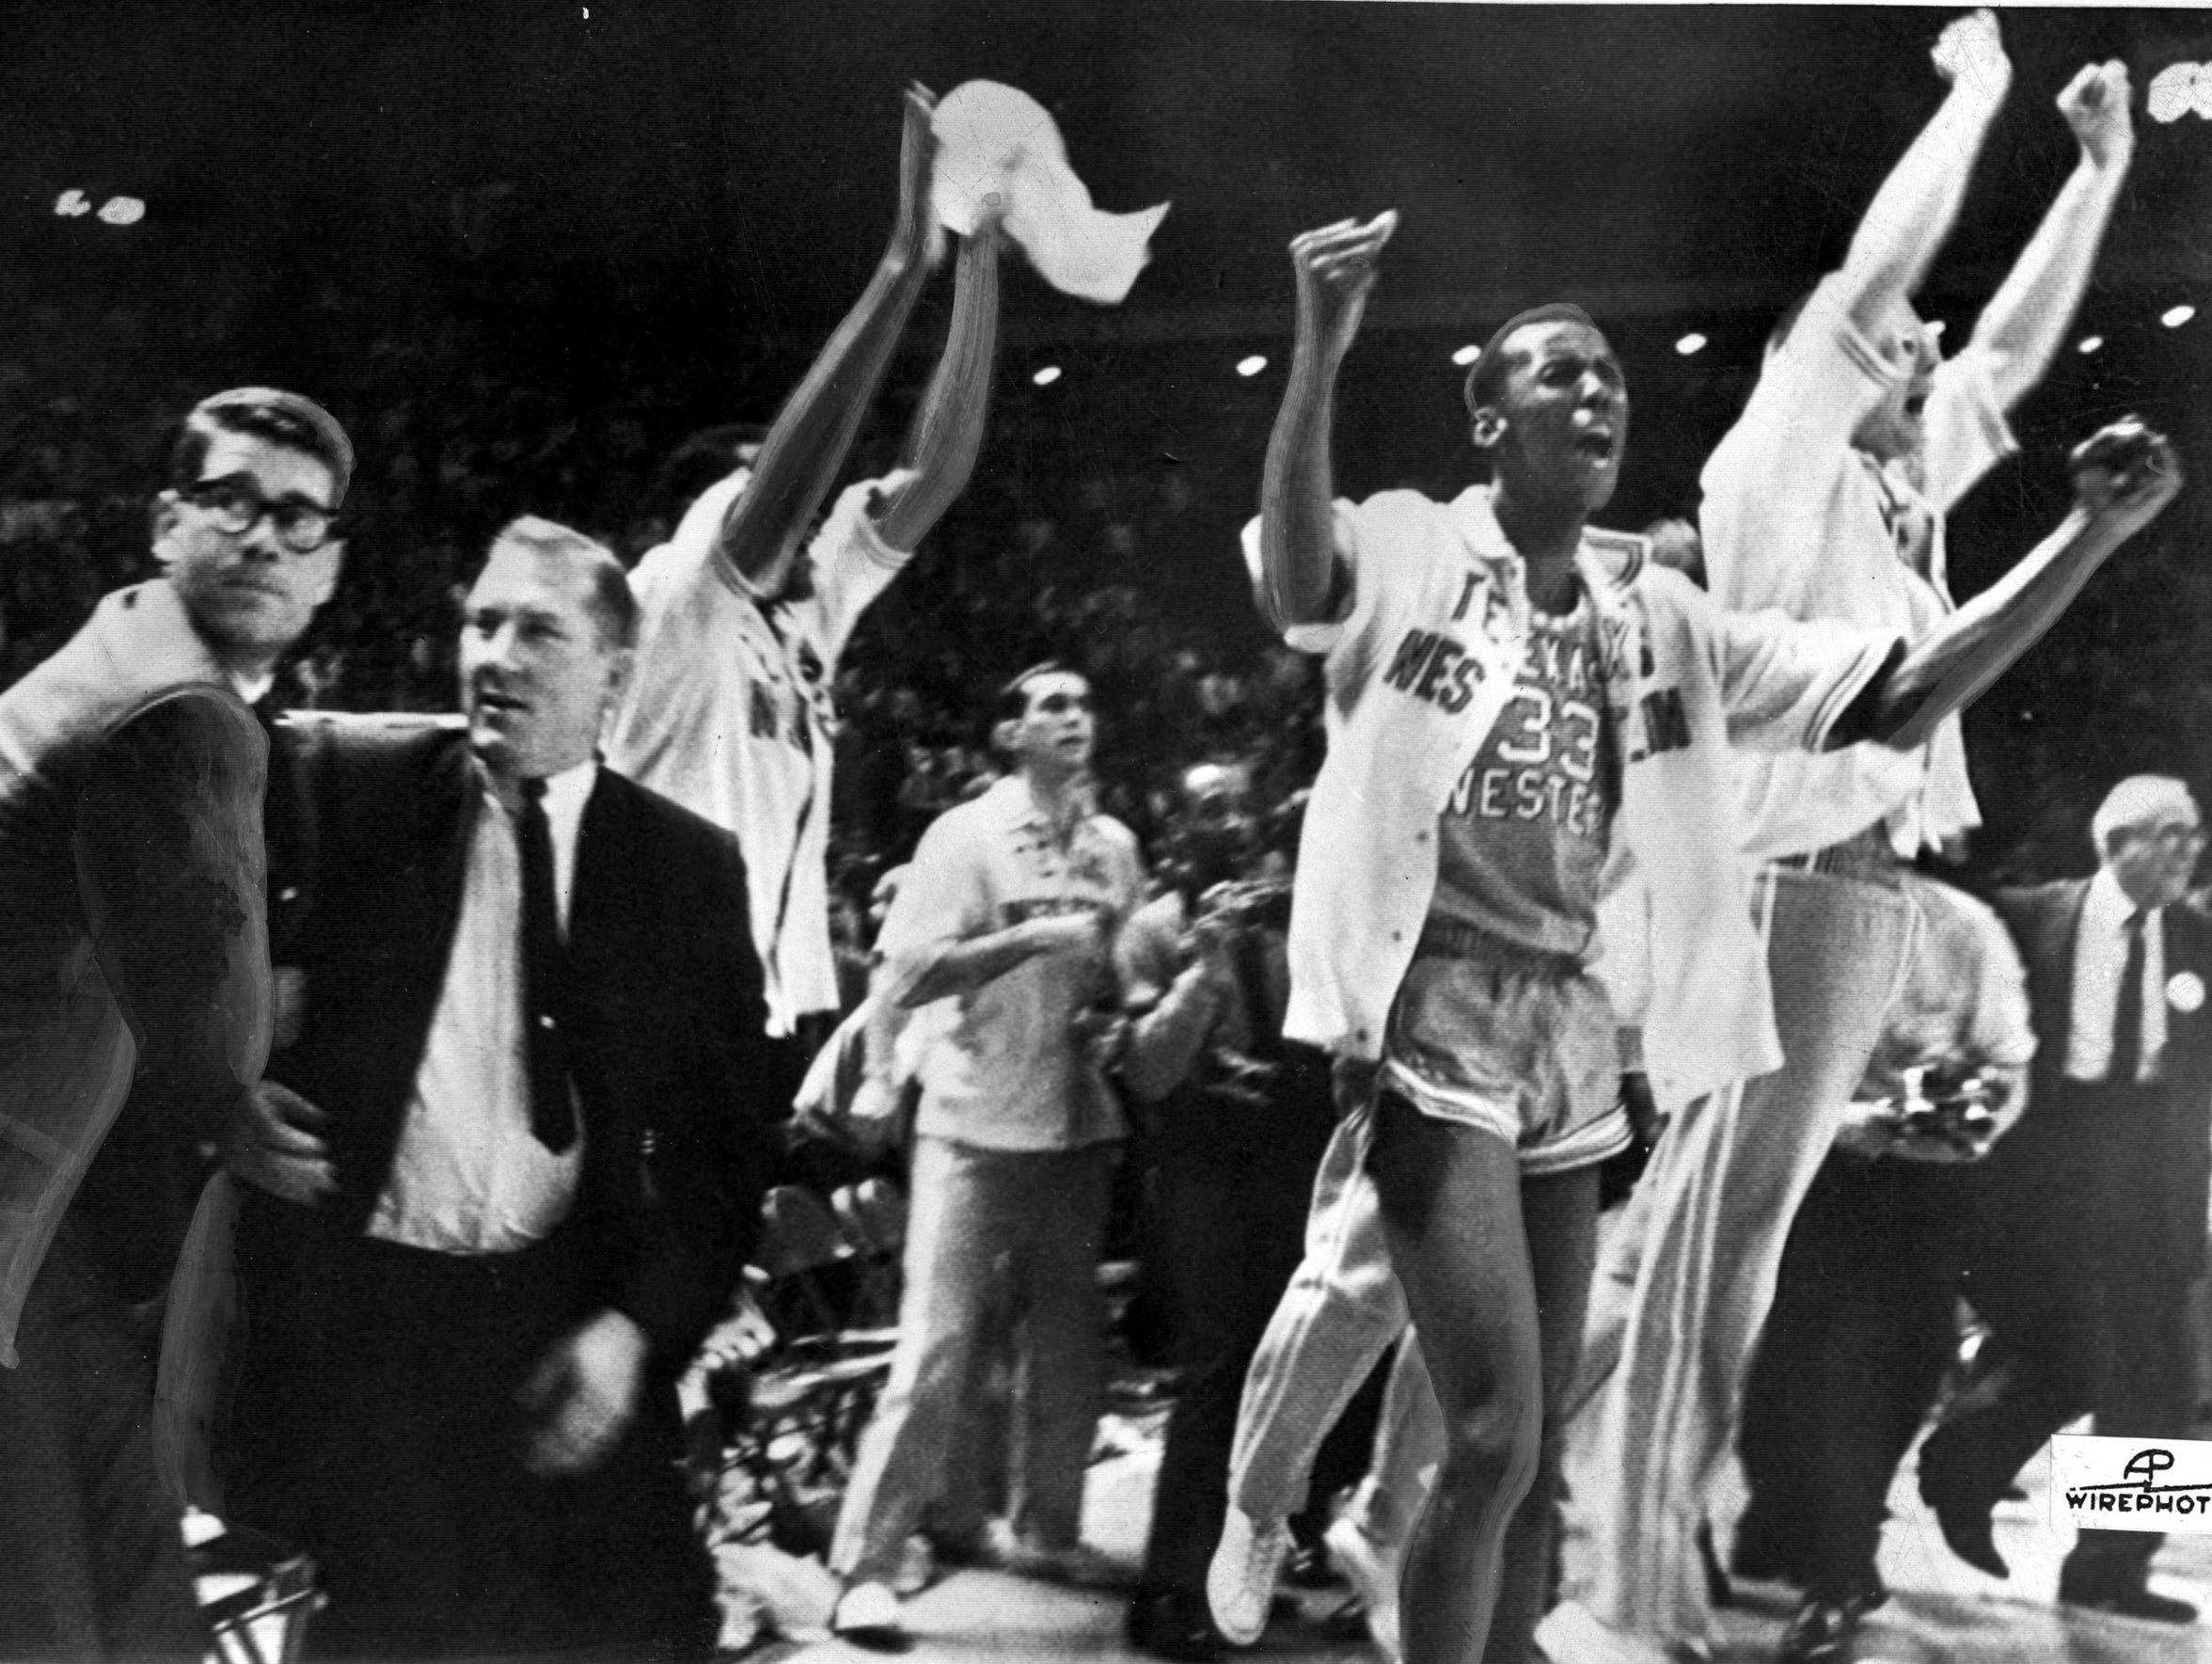 In this March 19, 1966, file photo, Texas Western basketball